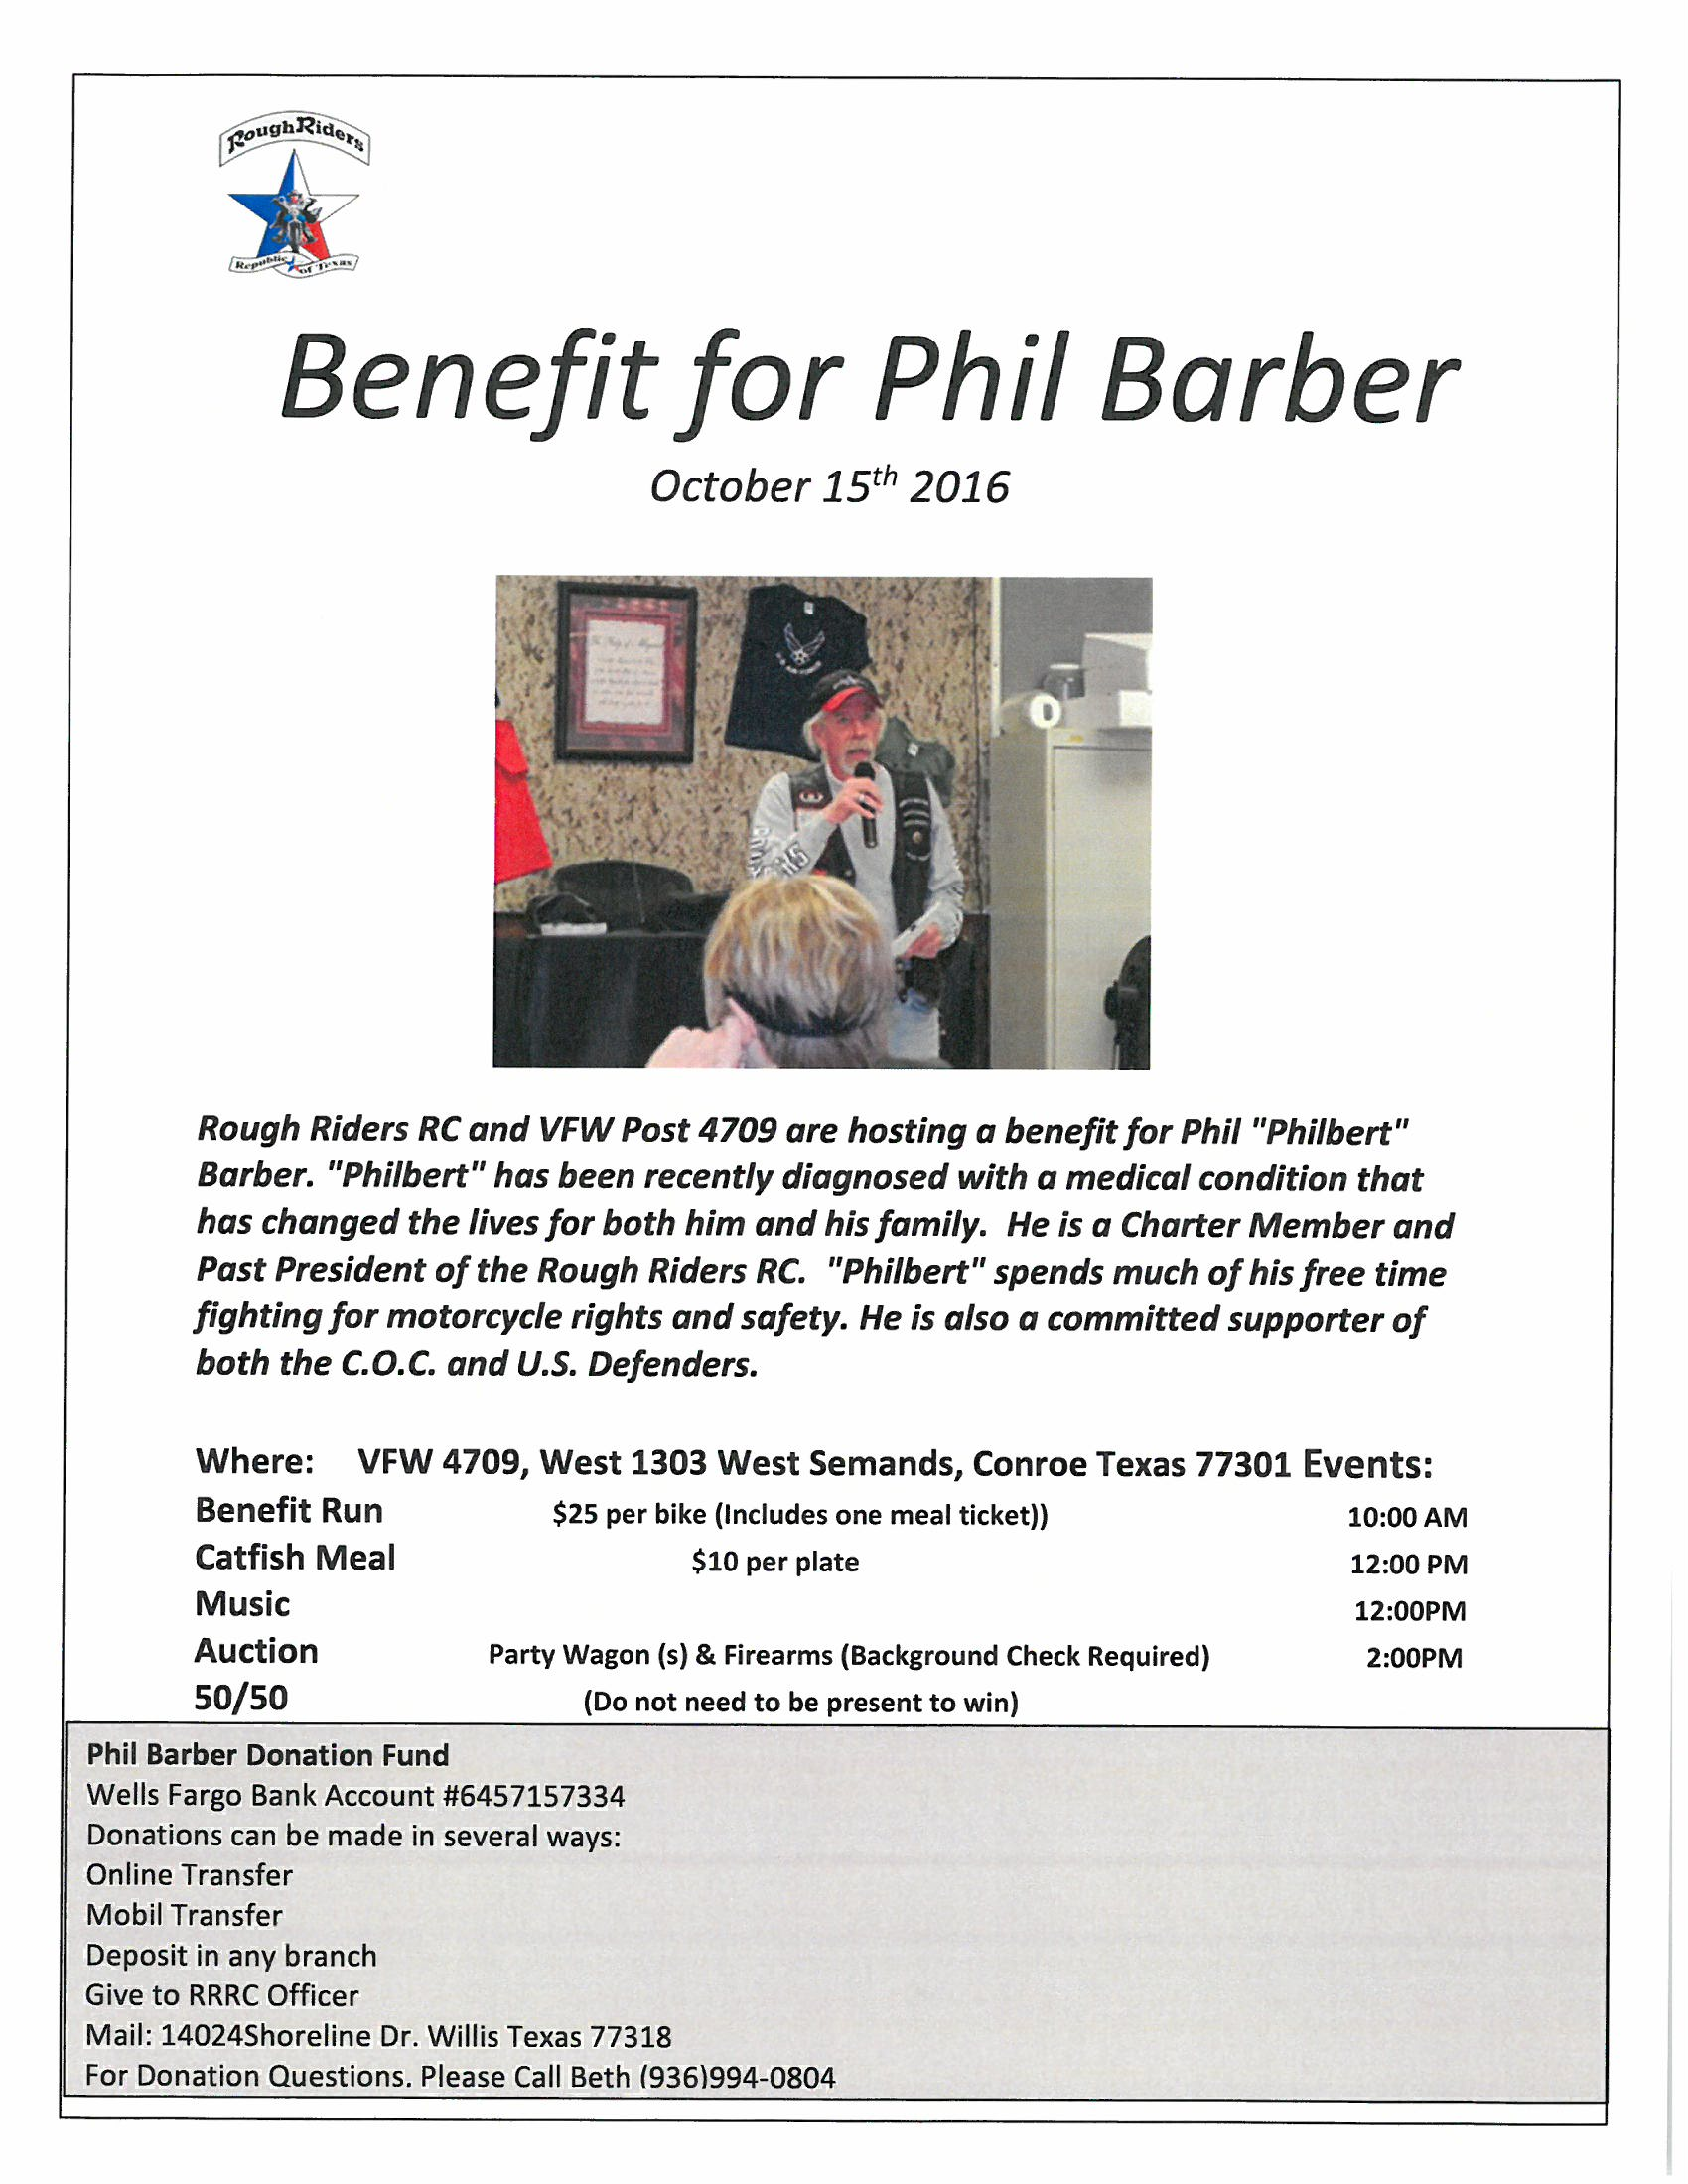 phil-barber-benefit-flyer-s-2016-revised_page_1